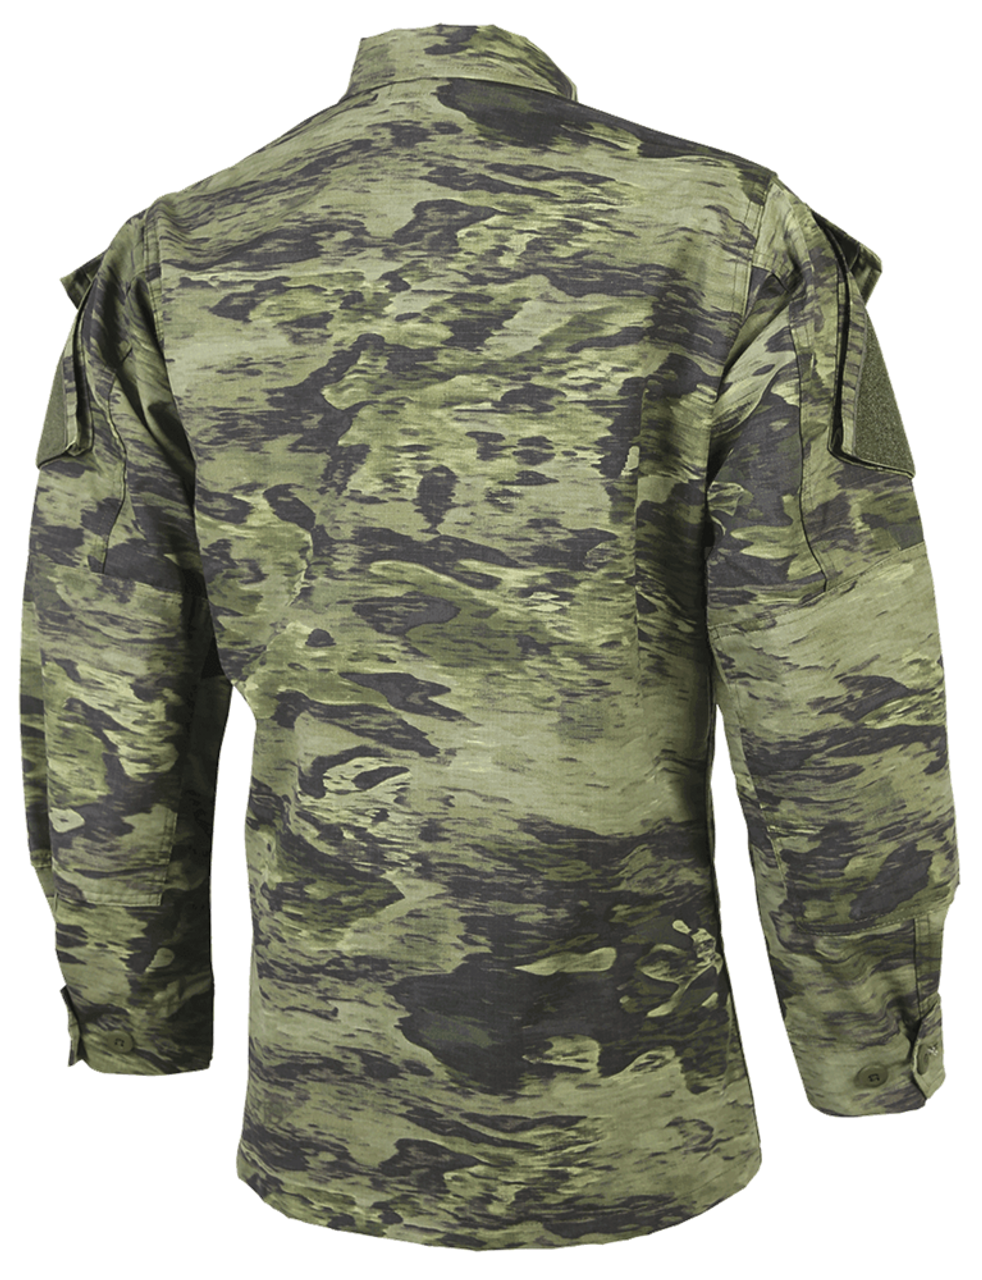 BDU XTREME SHIRT - A-TACS FGX from Hessen Tactical